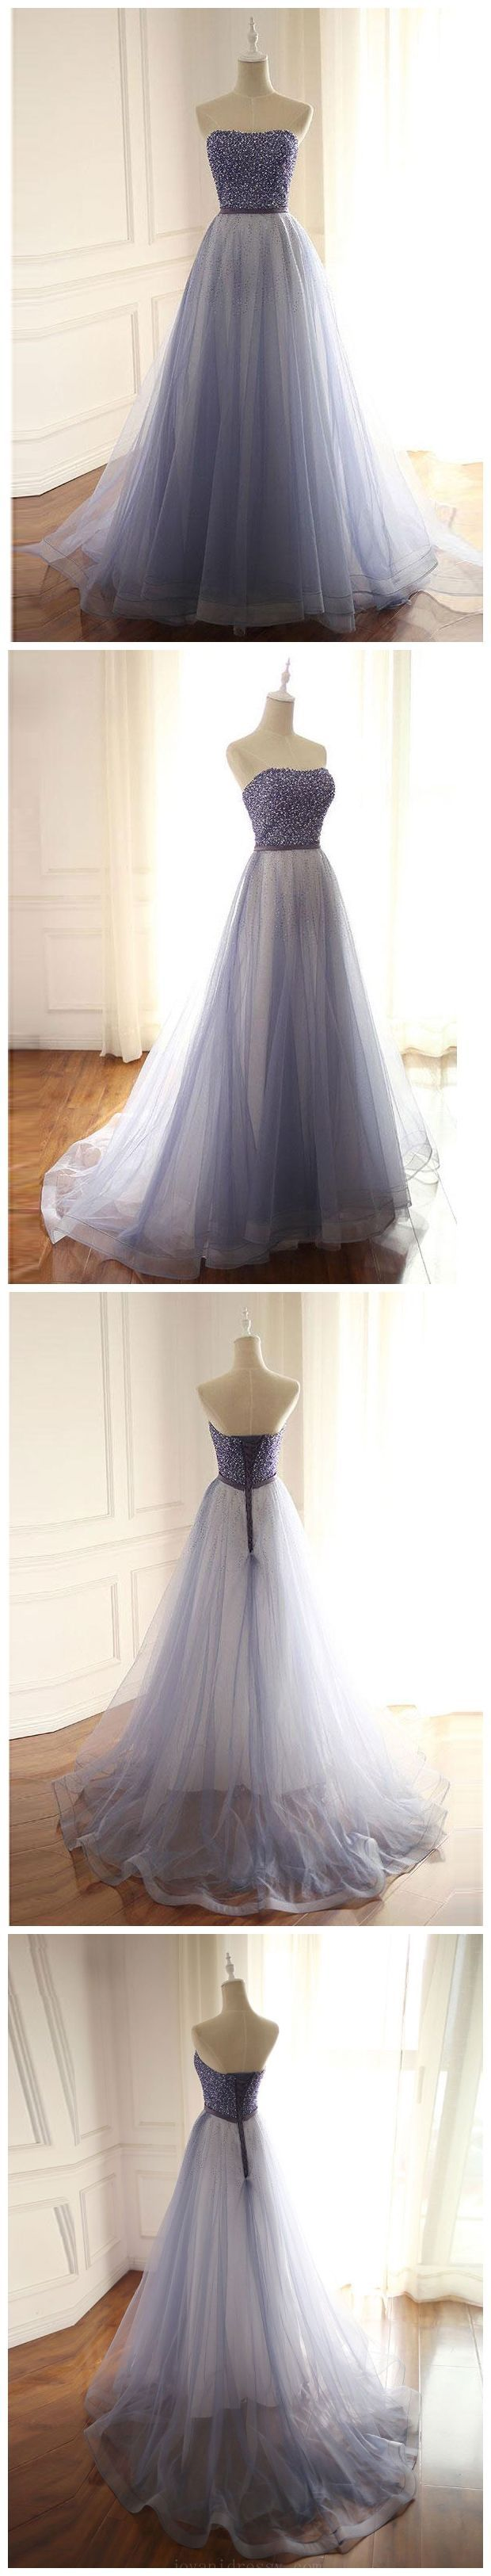 Custom made cute ball gown prom dresses prom dresses corset